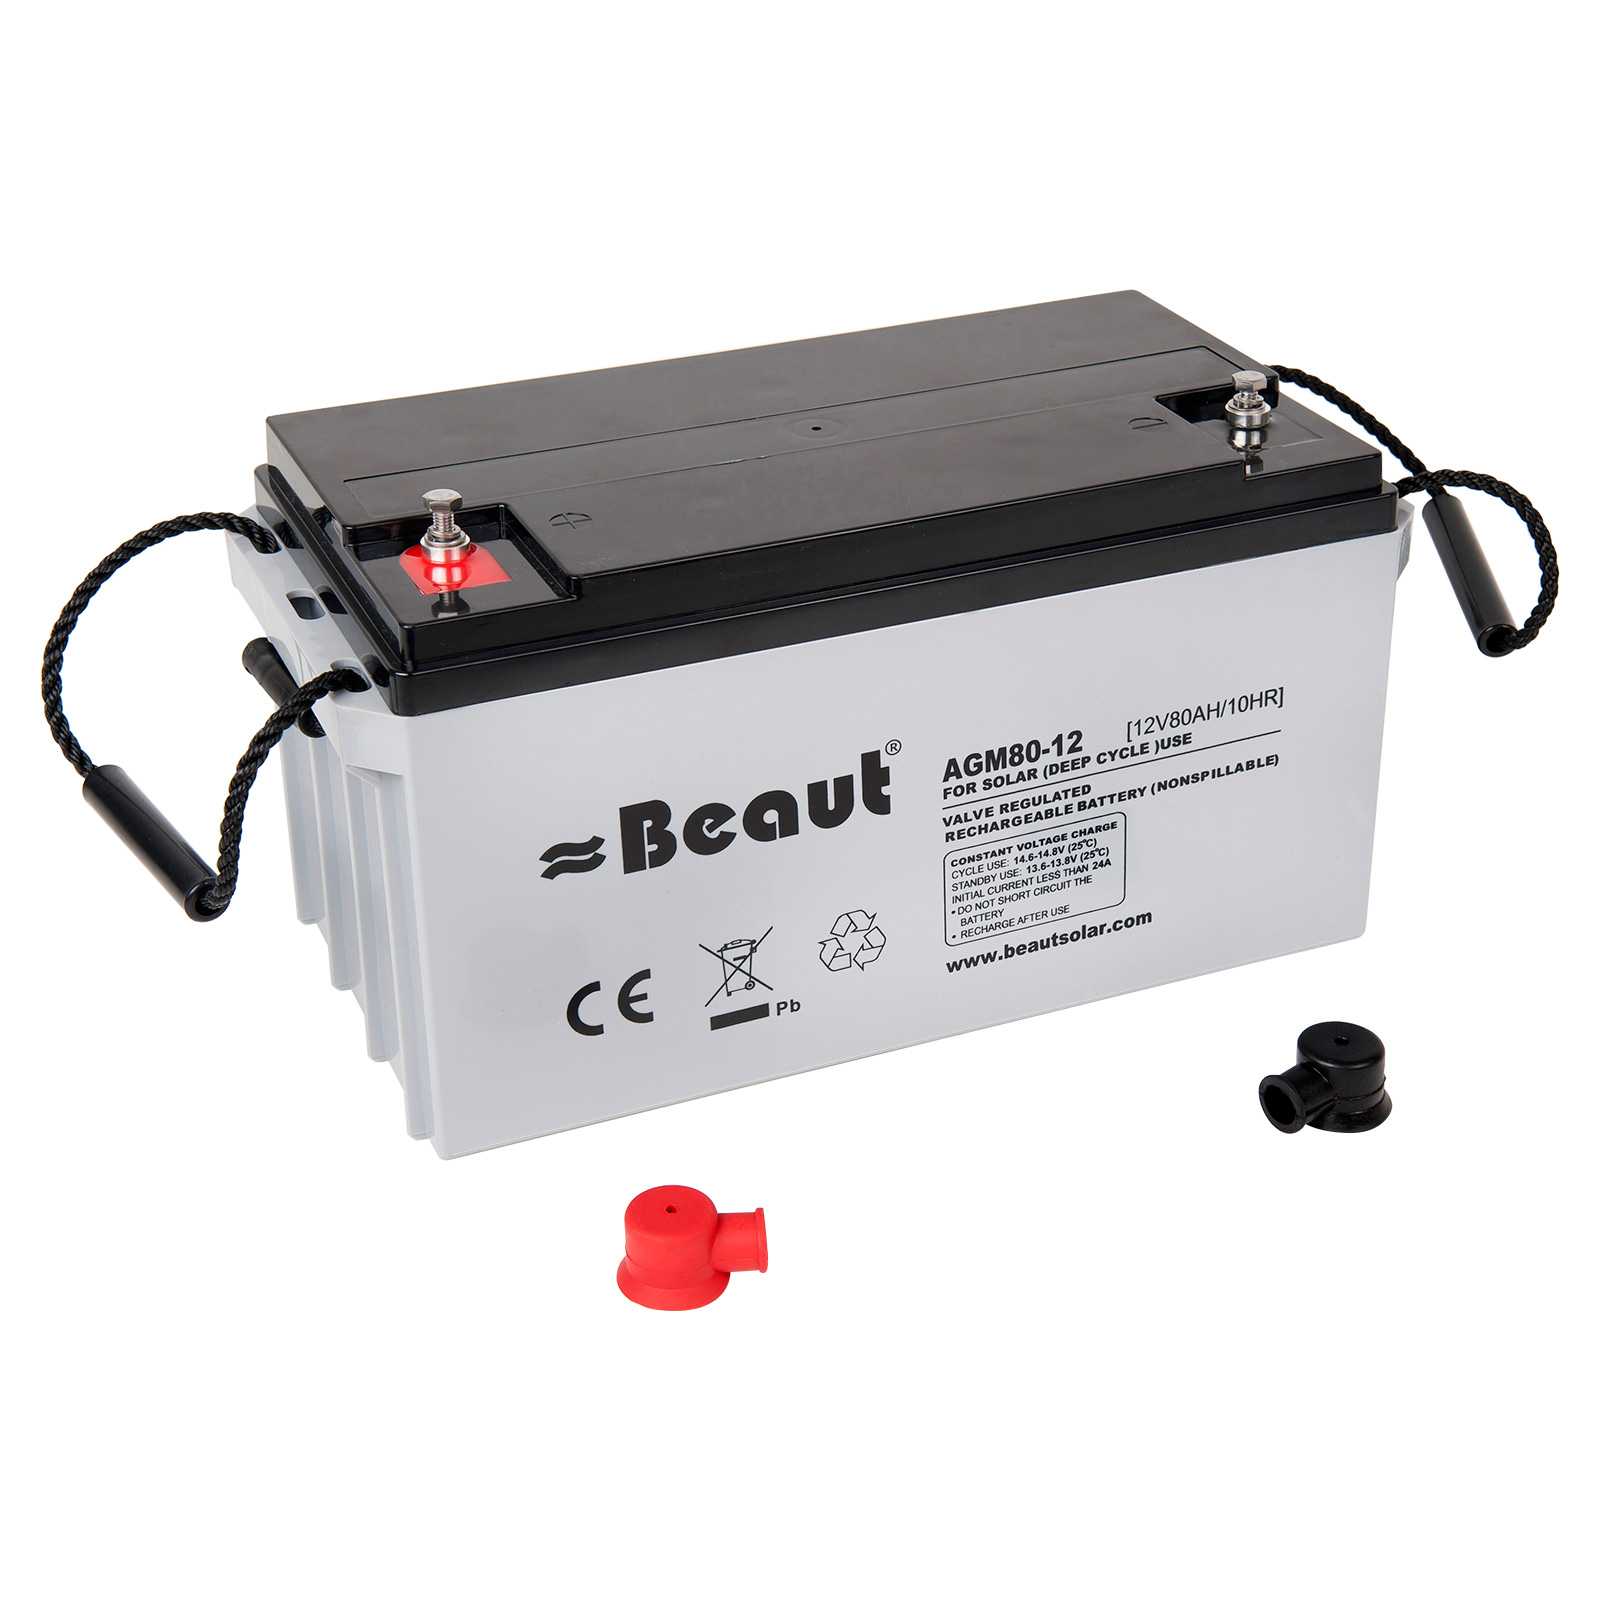 Solar Batterie Beaut 100 A 12 Volt AGM 328x172x222 mm